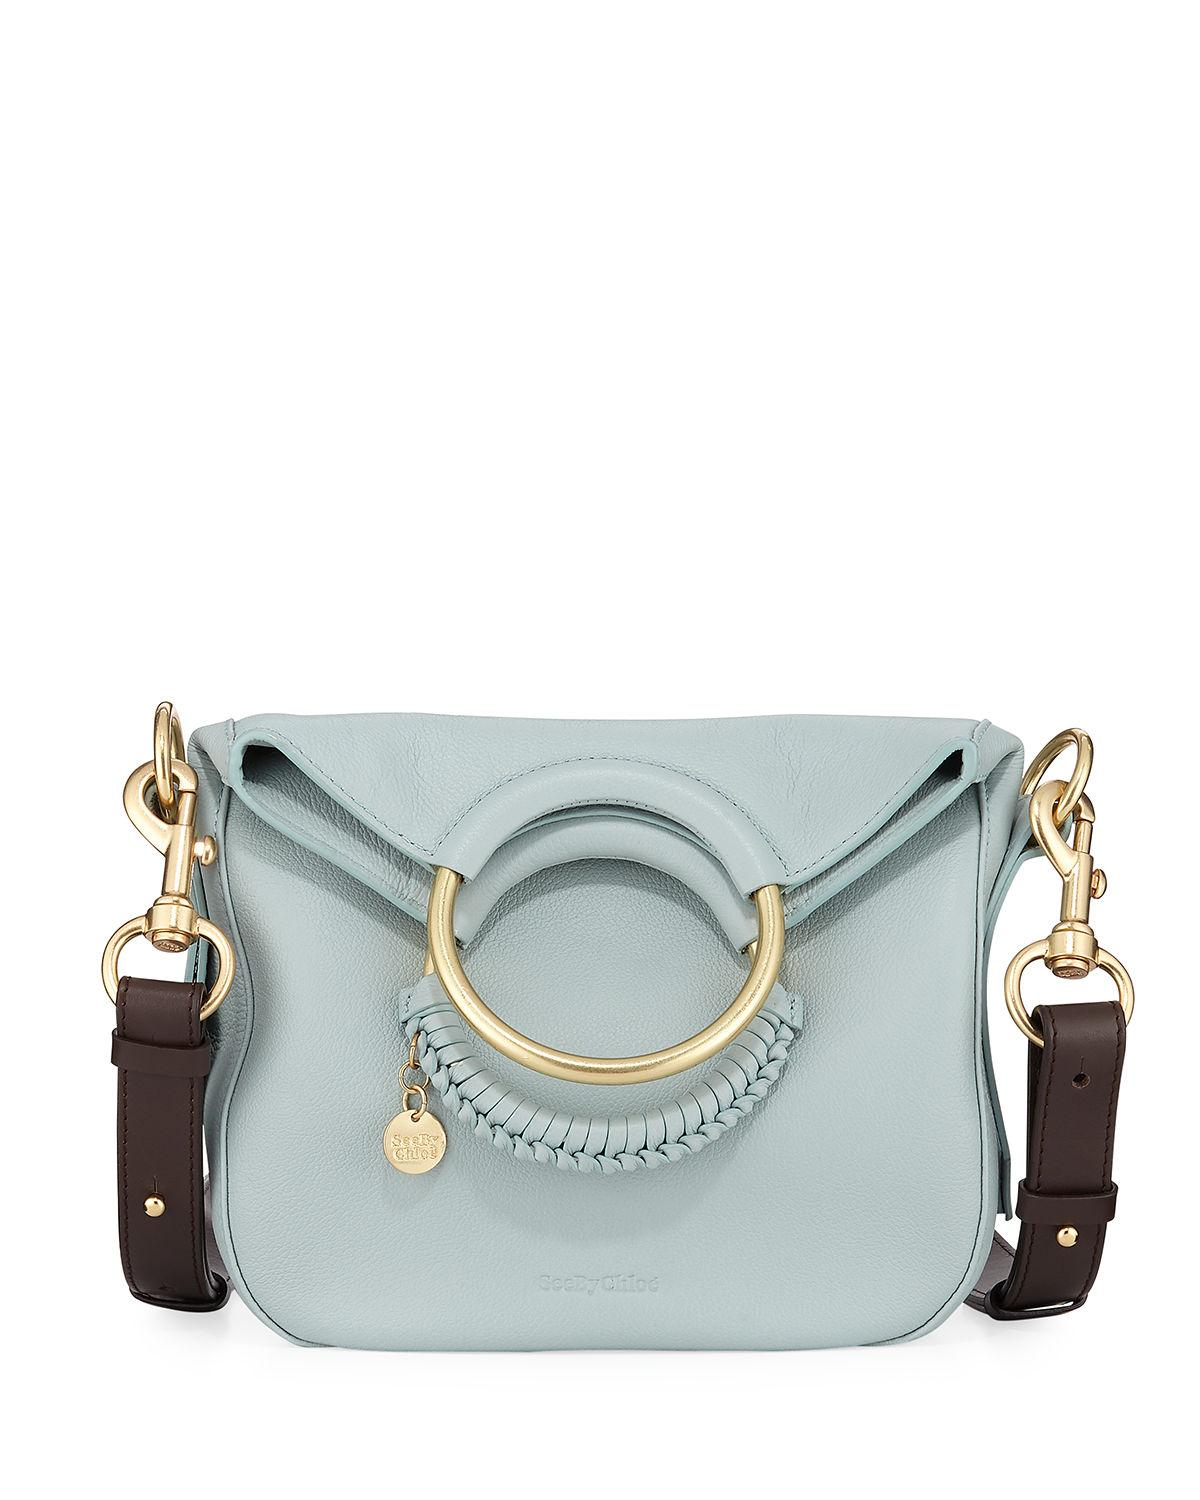 9e938e0fcb See By Chloé Monroe Small Crossbody Bag in Blue - Lyst